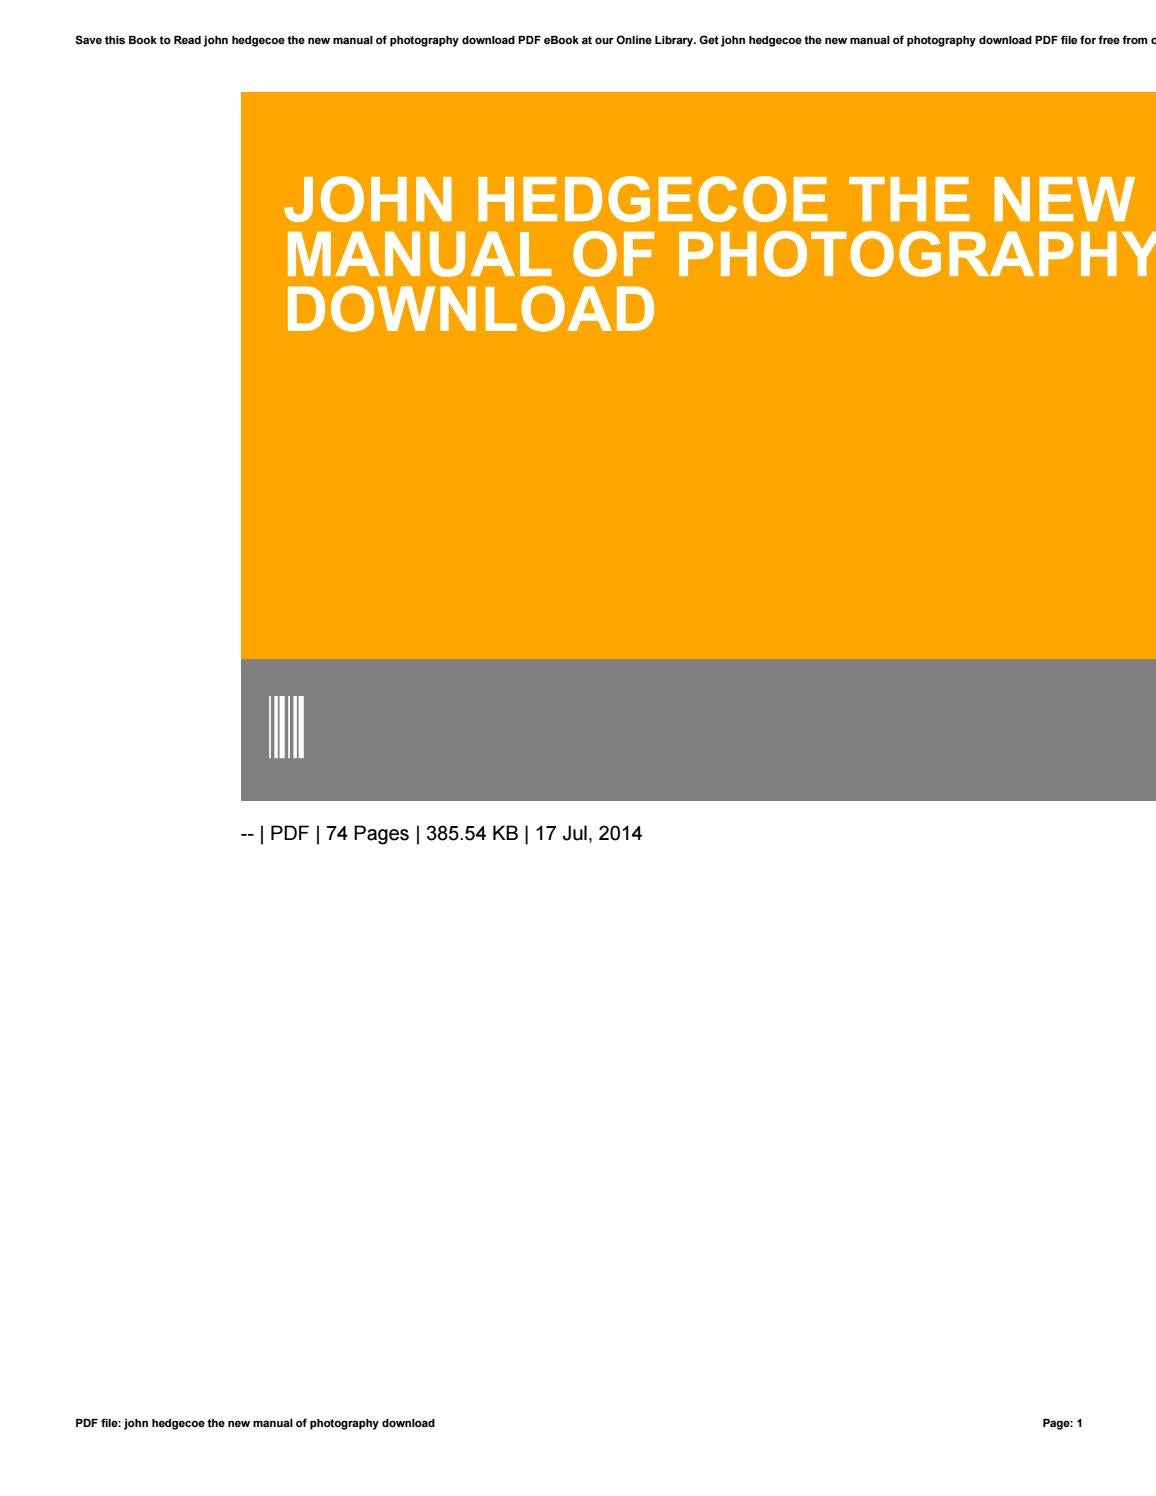 John hedgecoe the new manual of photography download by  CliffordCrockett2161 - issuu